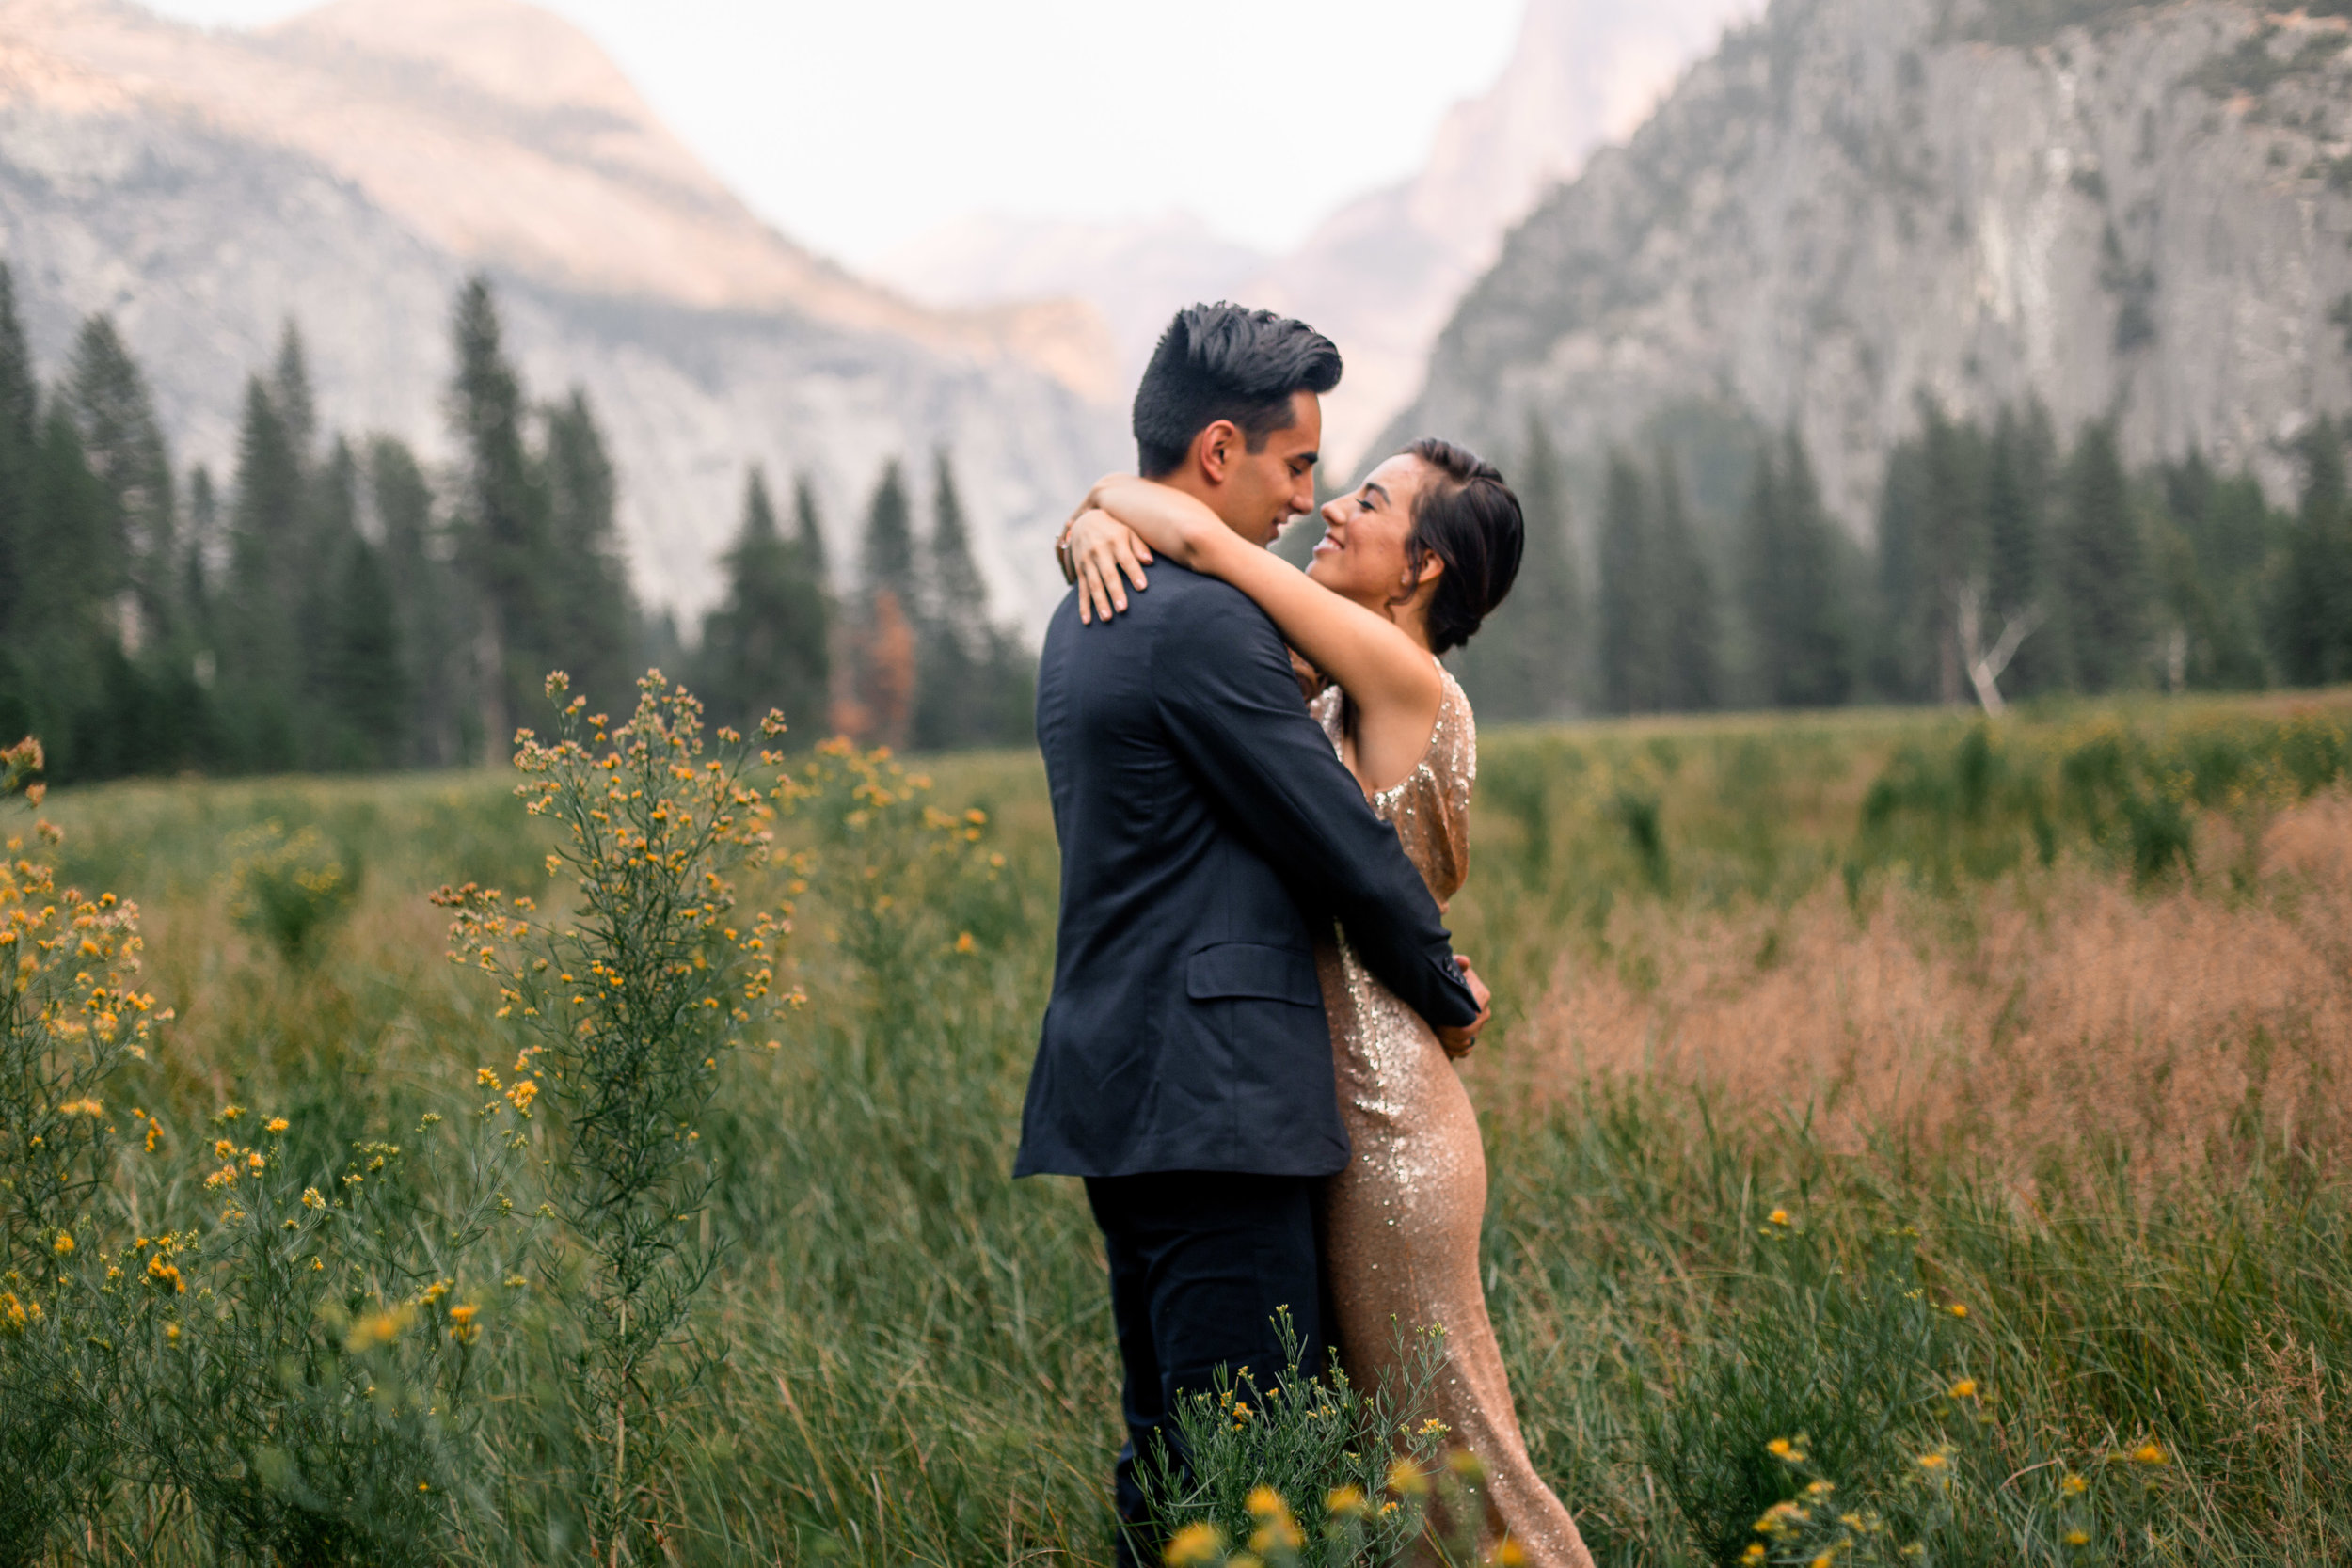 nicole-daacke-photography-yosemite-national-park-adventurous-engagement-session-half-dome-engagement-session-anniversary-photographer-yosemite-elopement-photographer-yosemite-intimate-wedding-photography-2.jpg